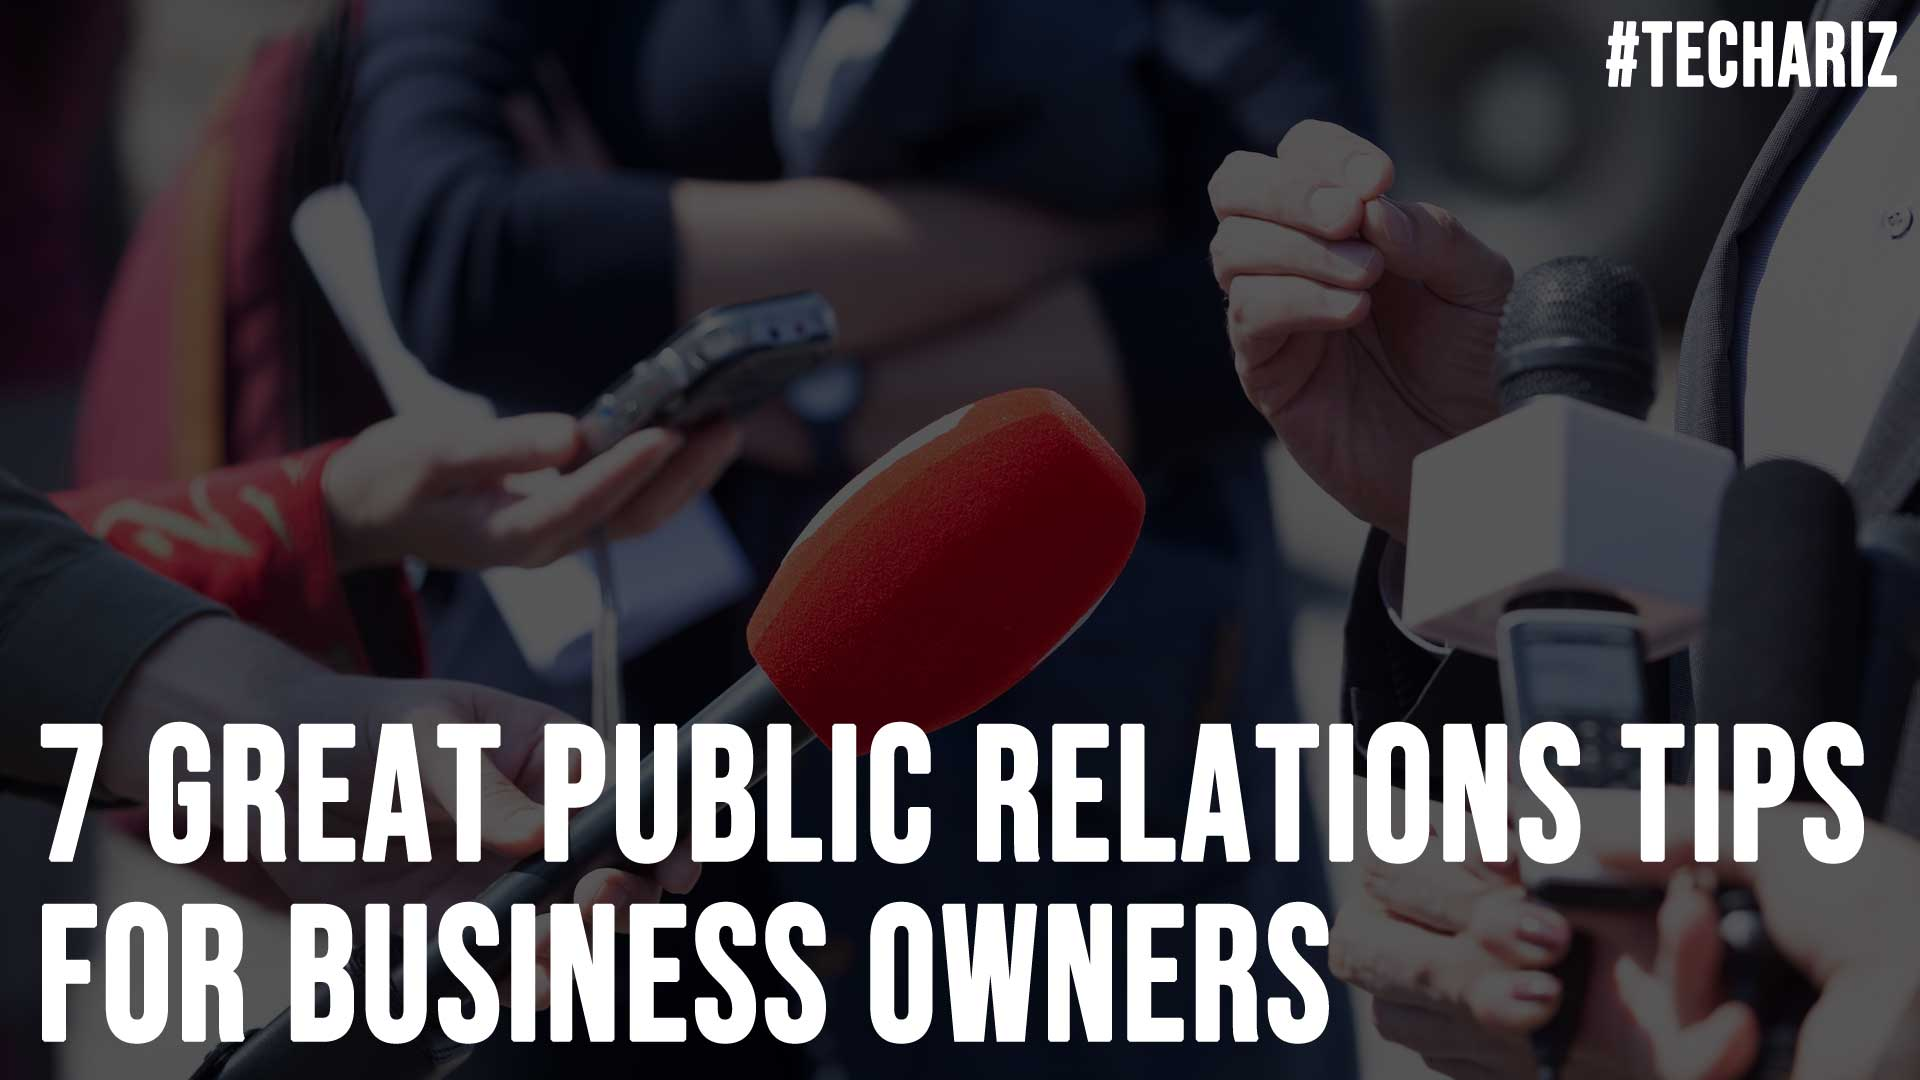 7 Great Public Relations Tips For Business Owners